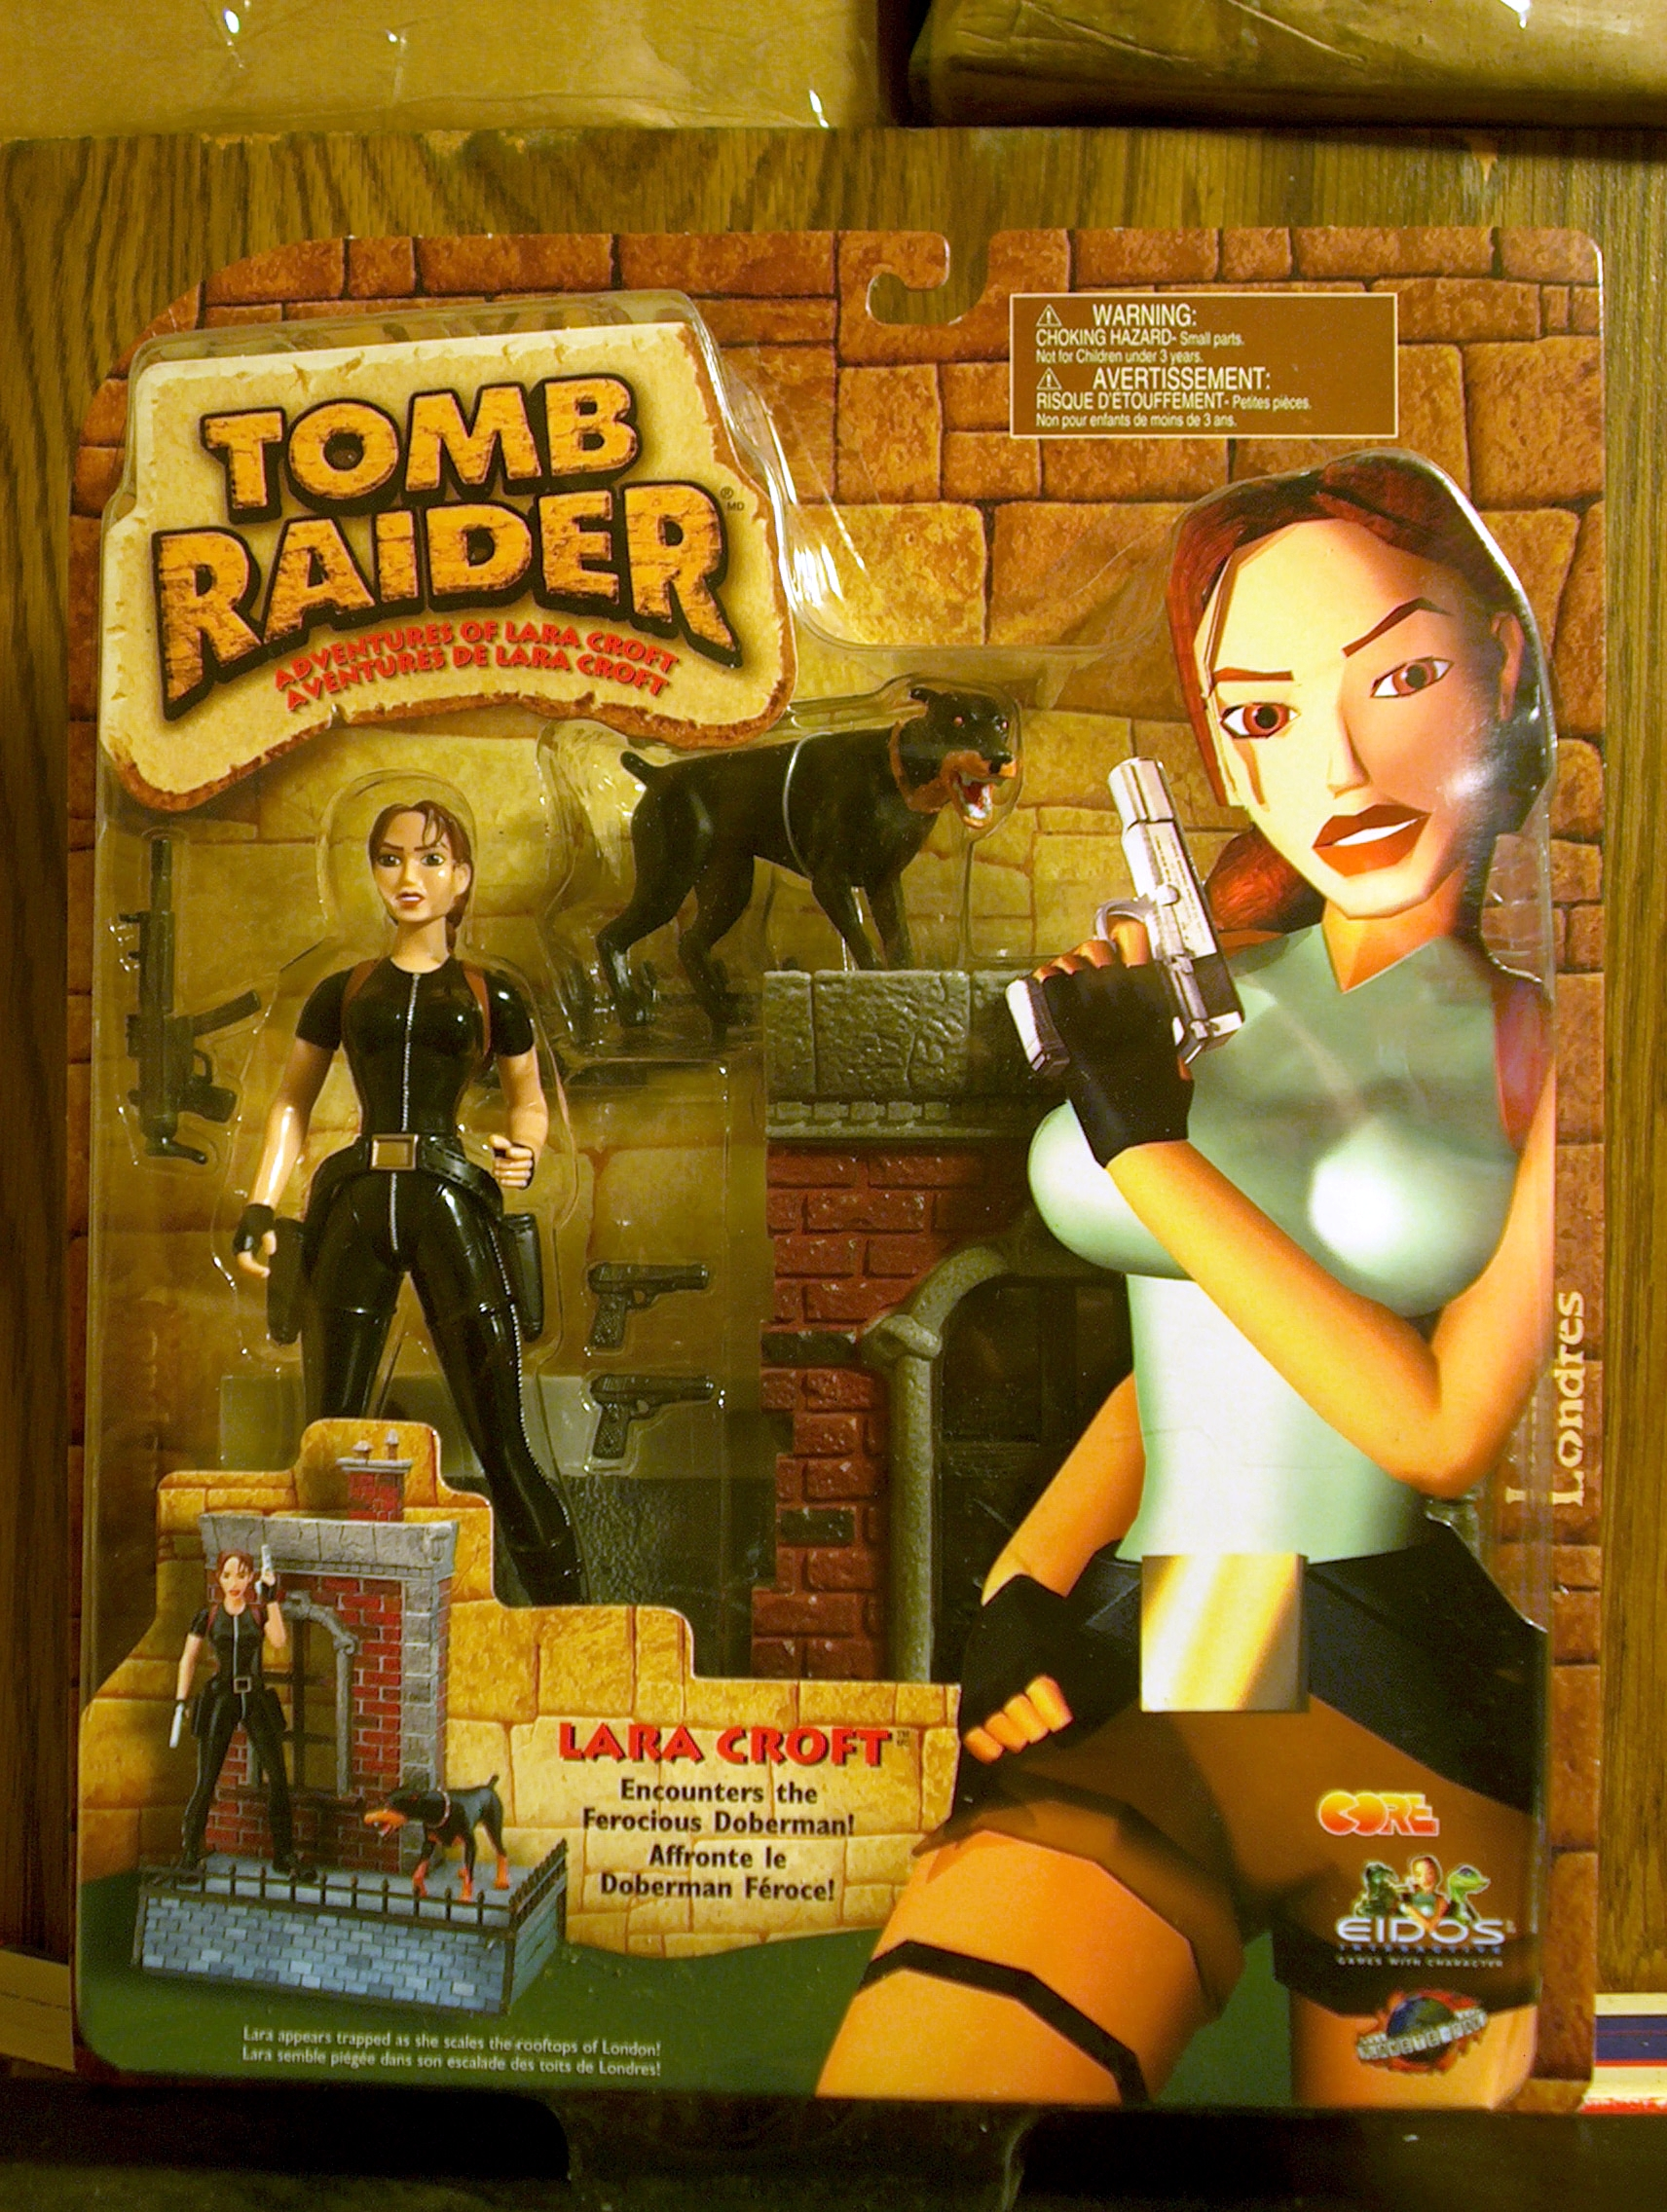 Lara Croft - Encounters the Ferocious Doberman!